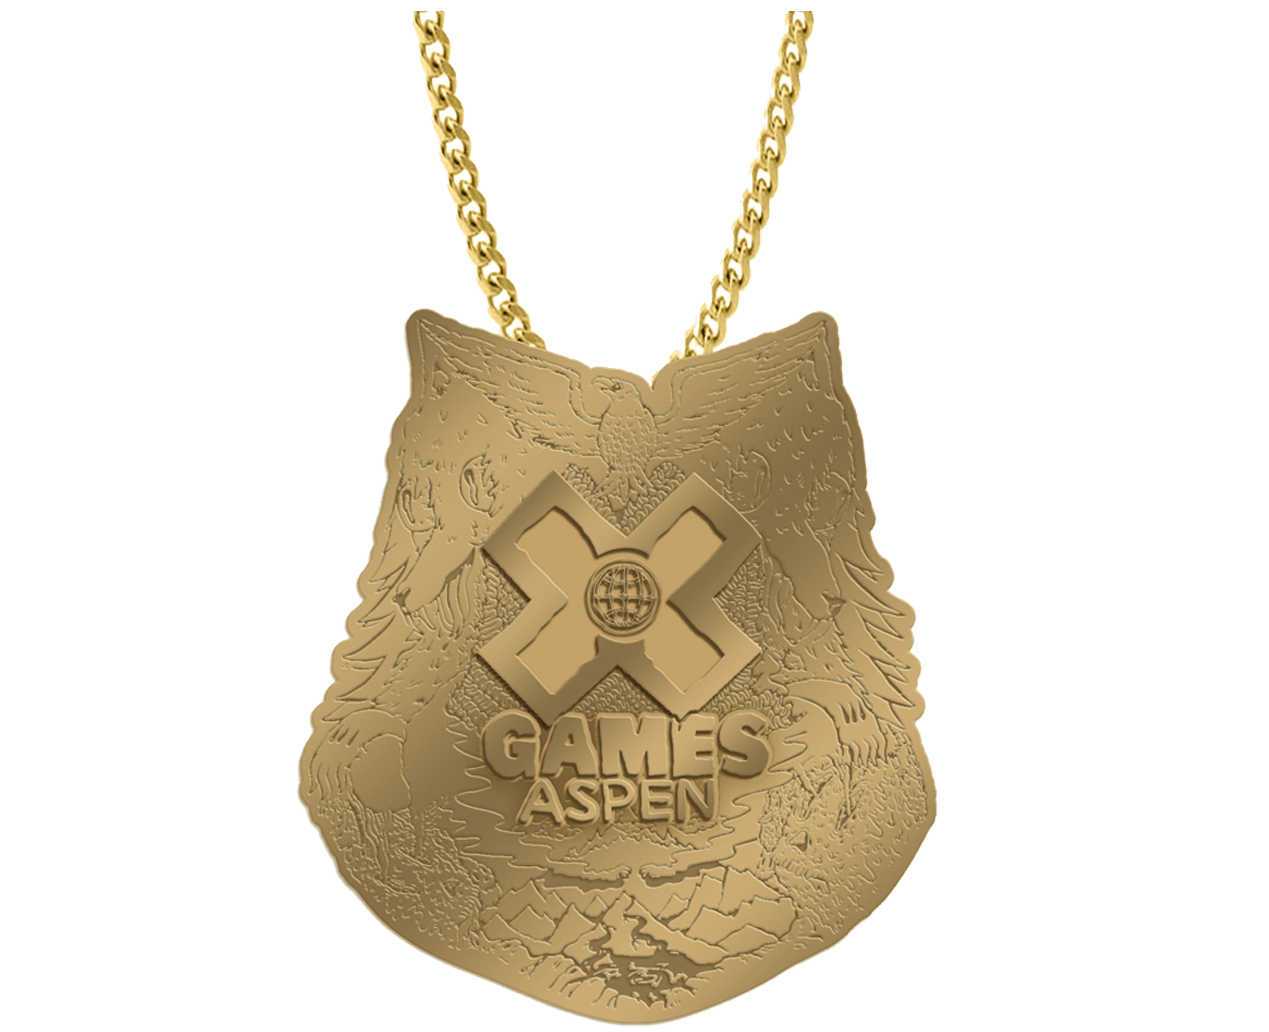 X Games Aspen 2019 messages sticker-5